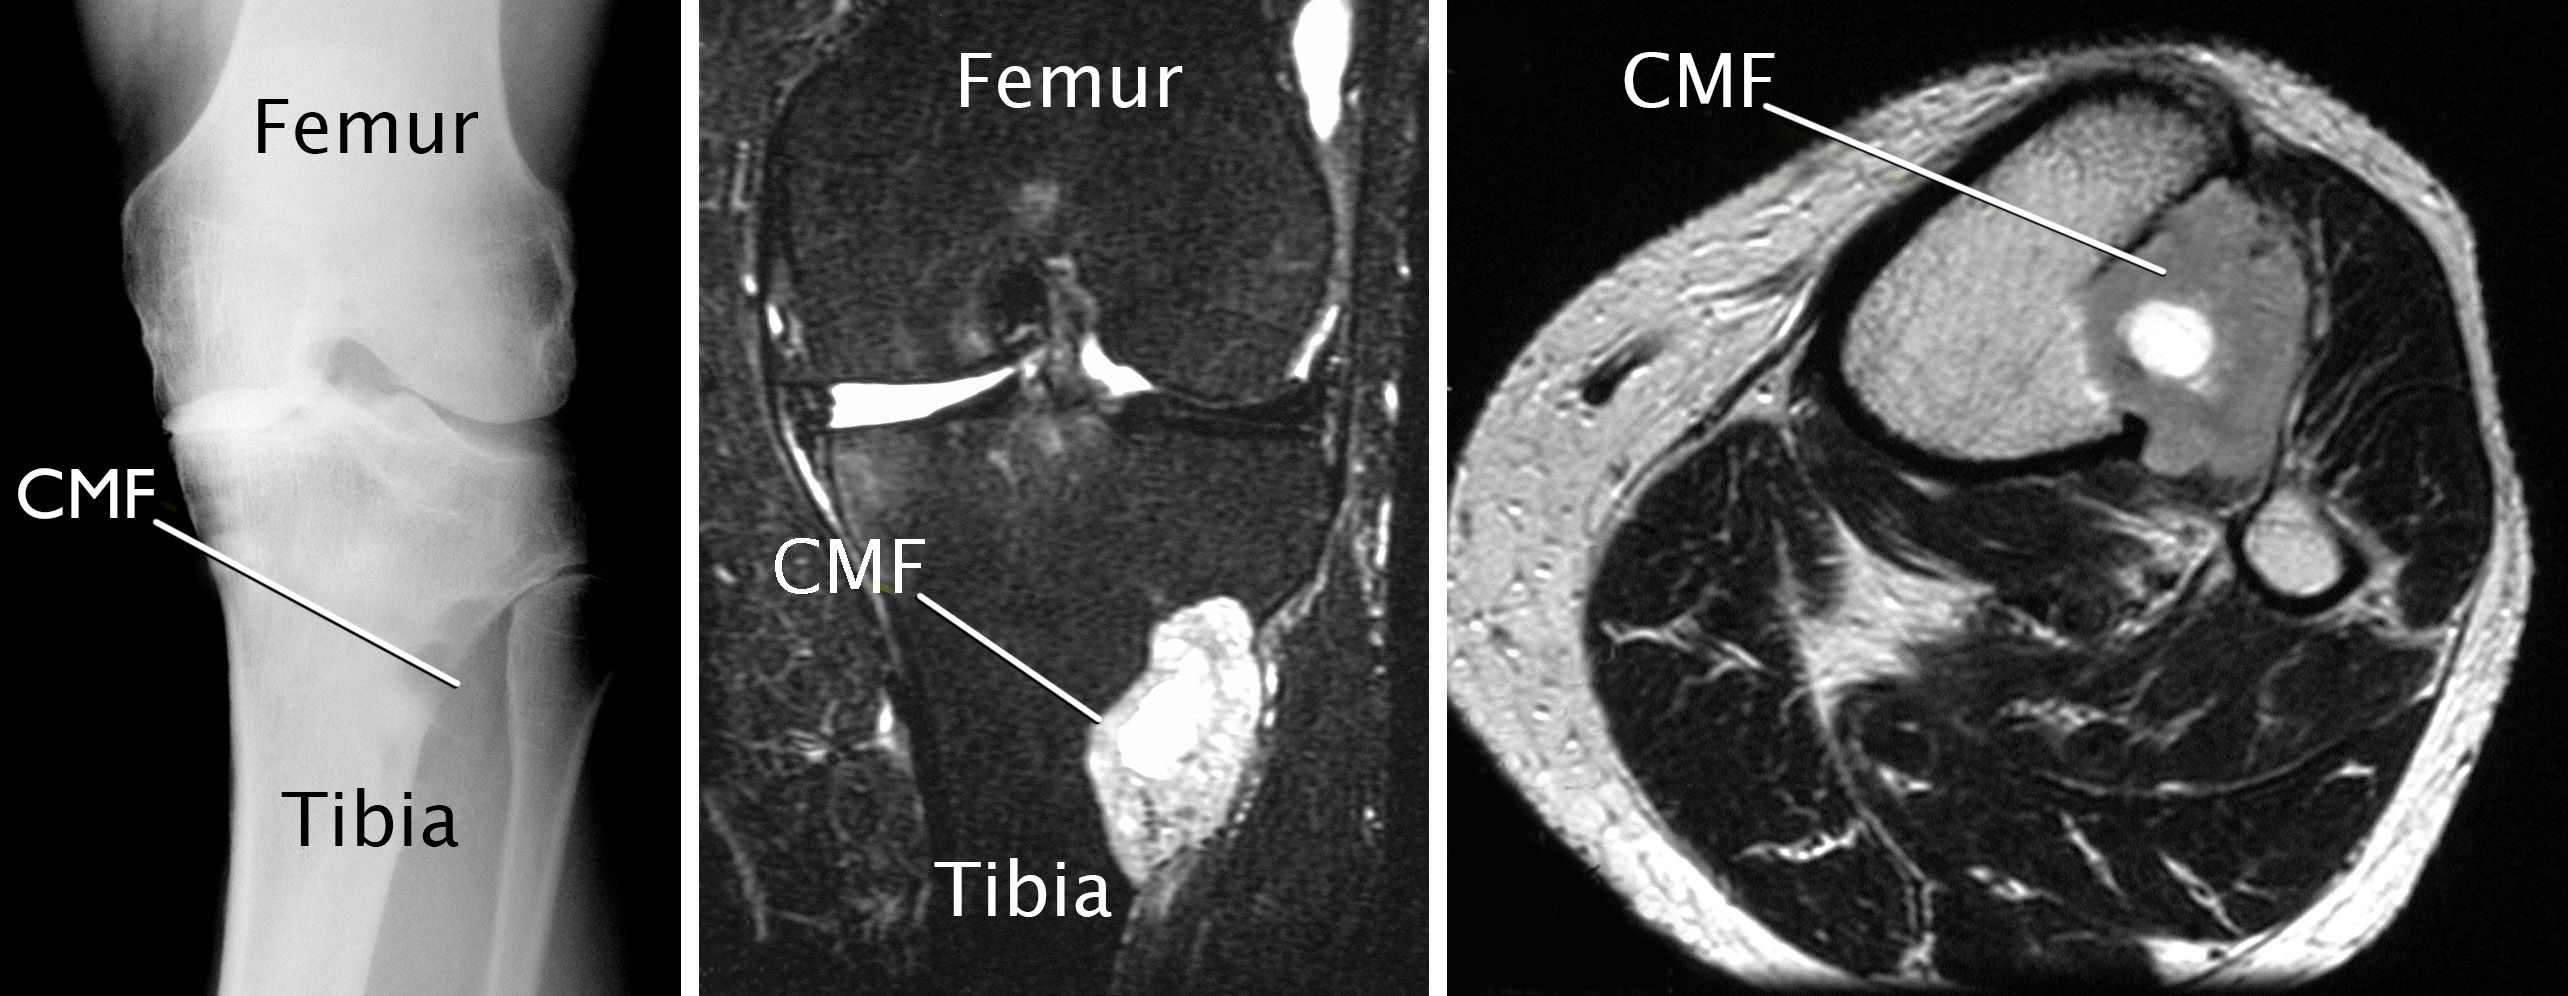 imaging scans of chondromyxoid fibroma